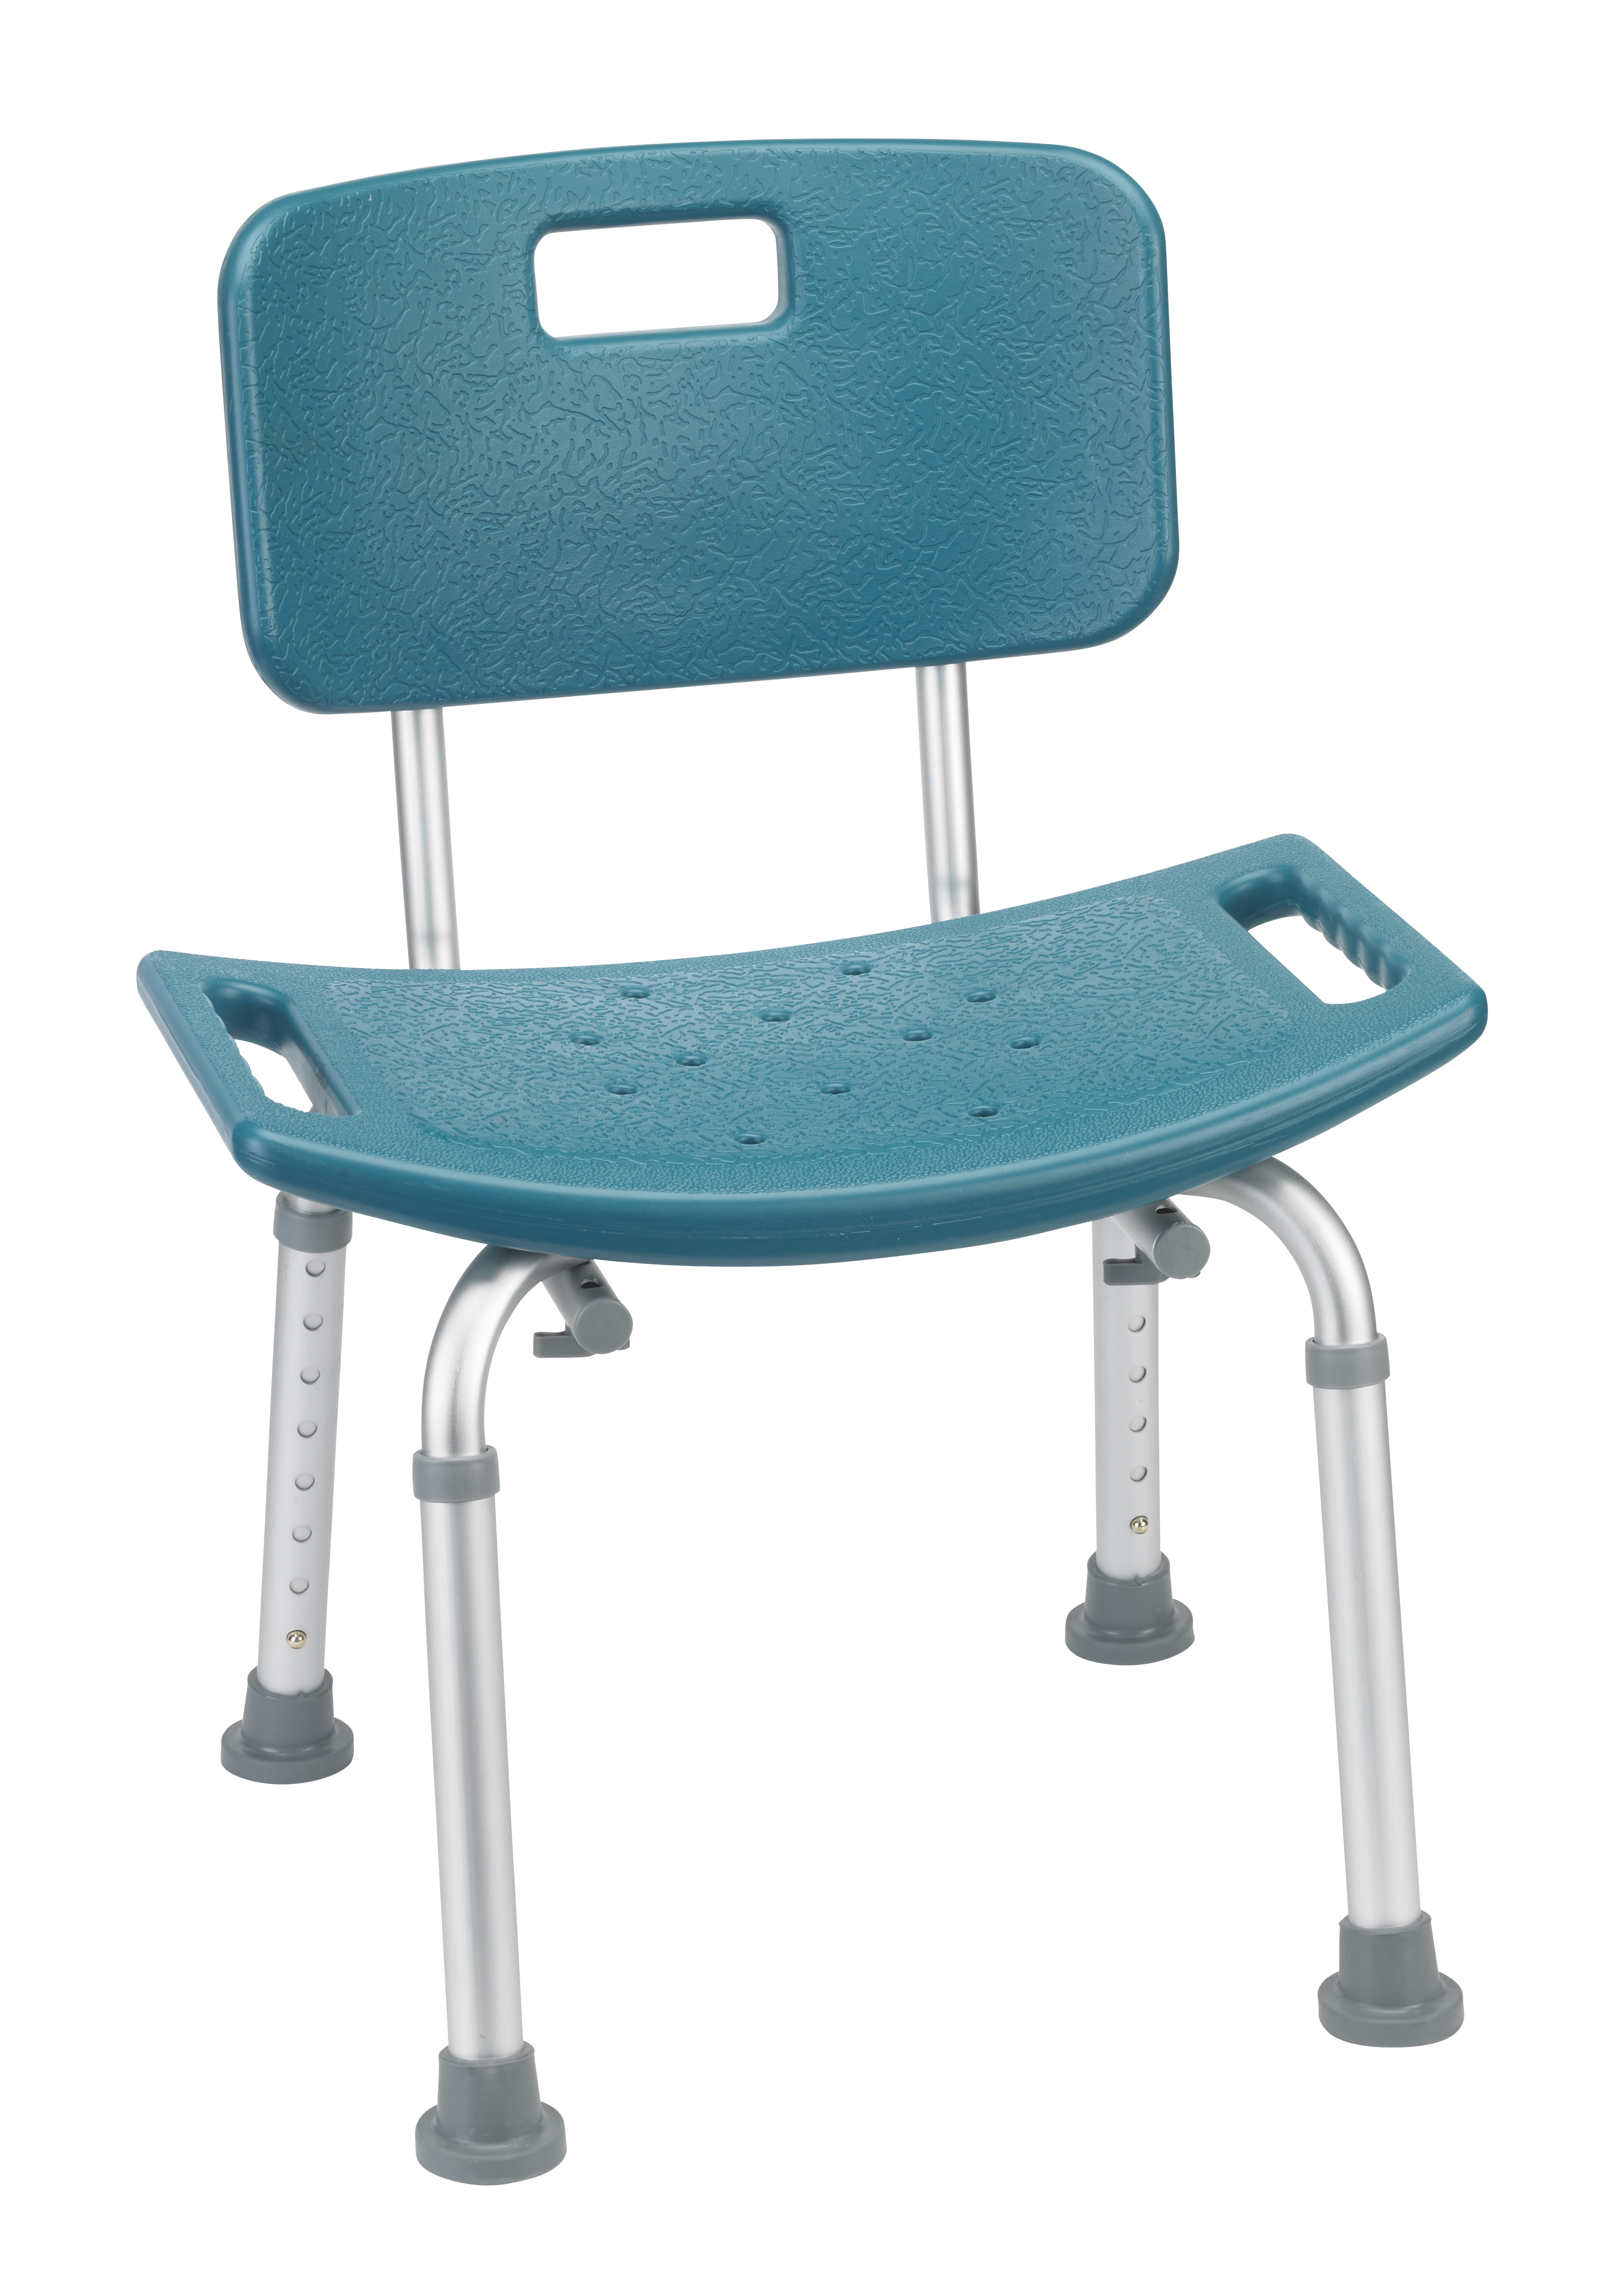 drive medical bathroom safety shower tub bench chair with back teal